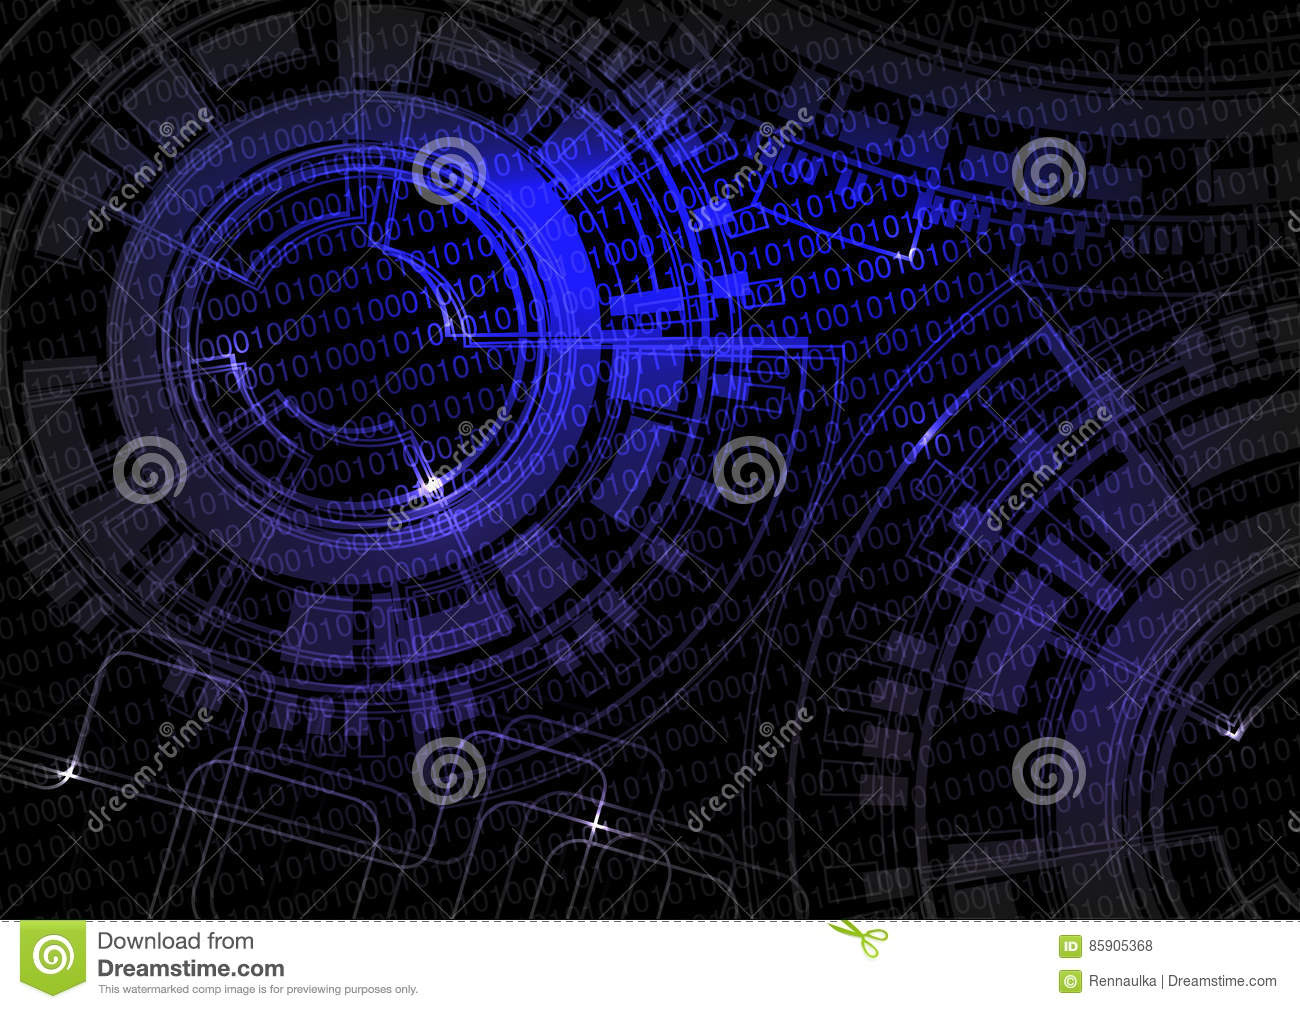 Black blue technology background with code and wheel design, future wallpaper